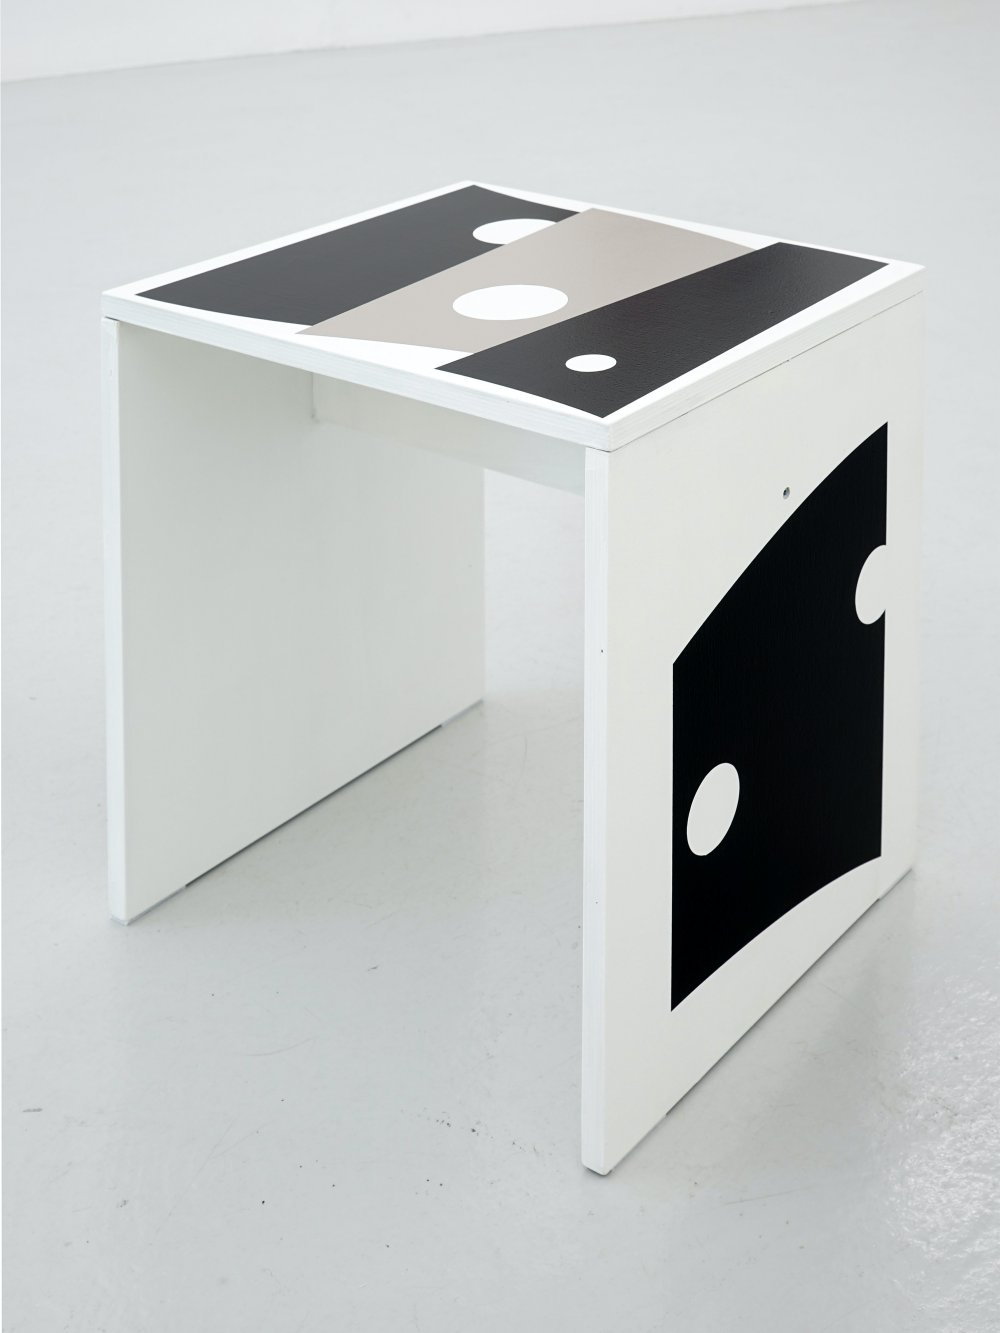 Stool/Object